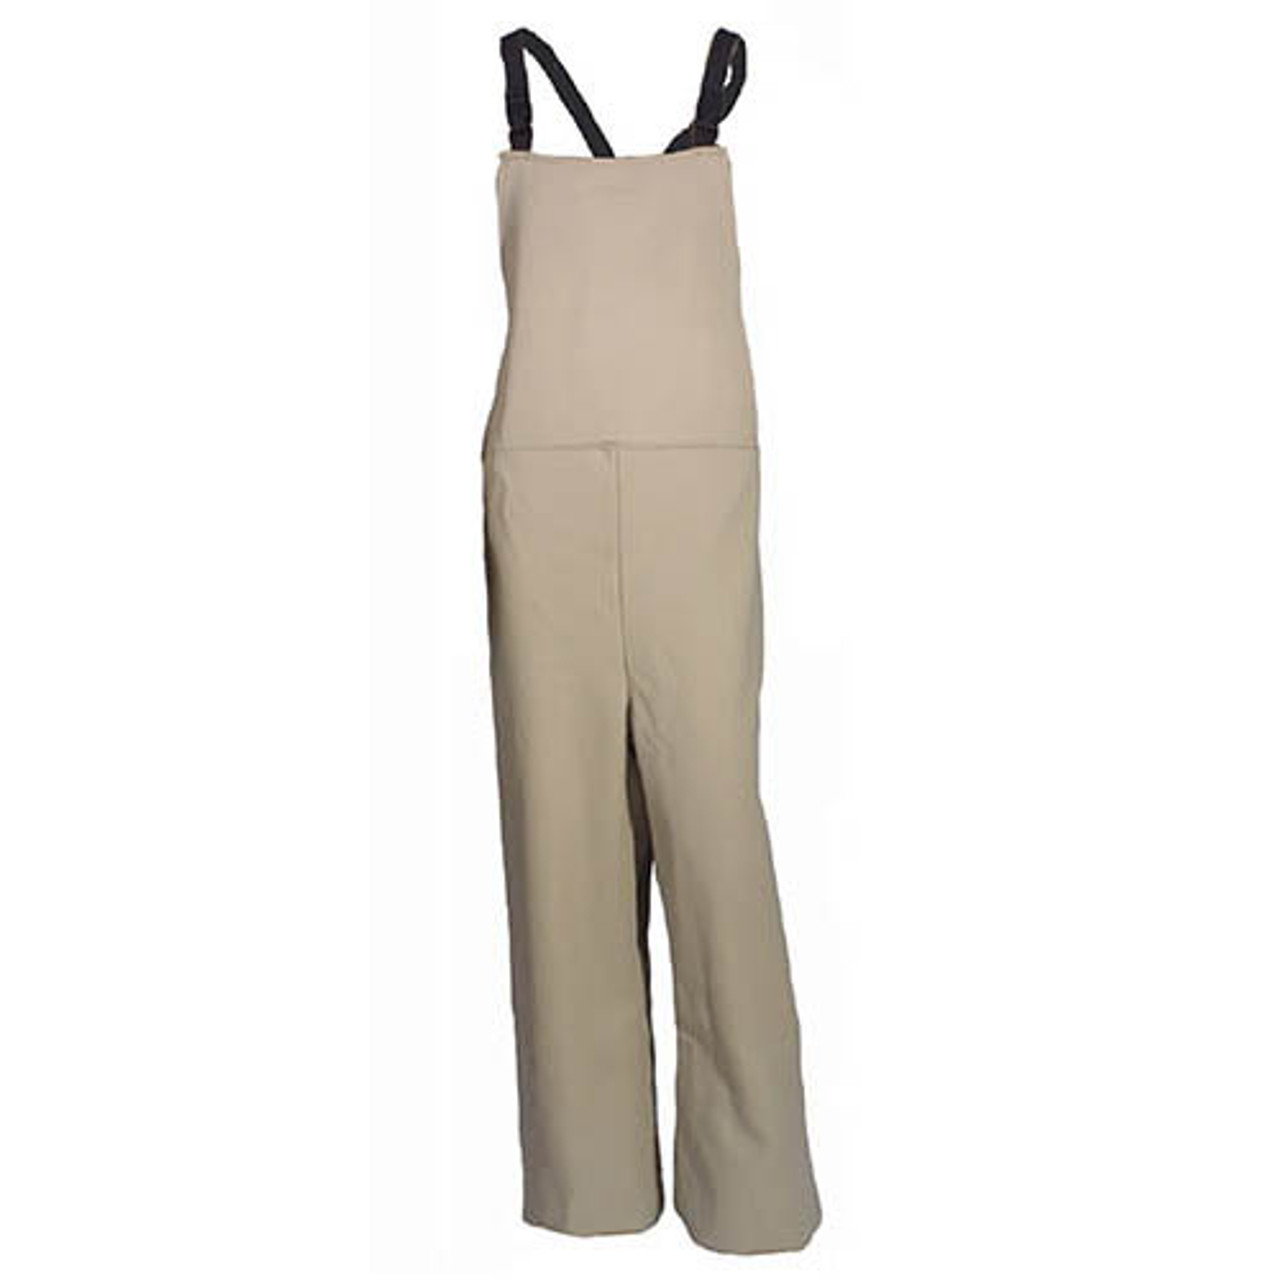 Cementex HRC4-OA-2X Arc Flash Rated Task Wear FR Treated Cotton Overalls, Rating: 40 Calories, Color: Khaki, Size: 2X-Large